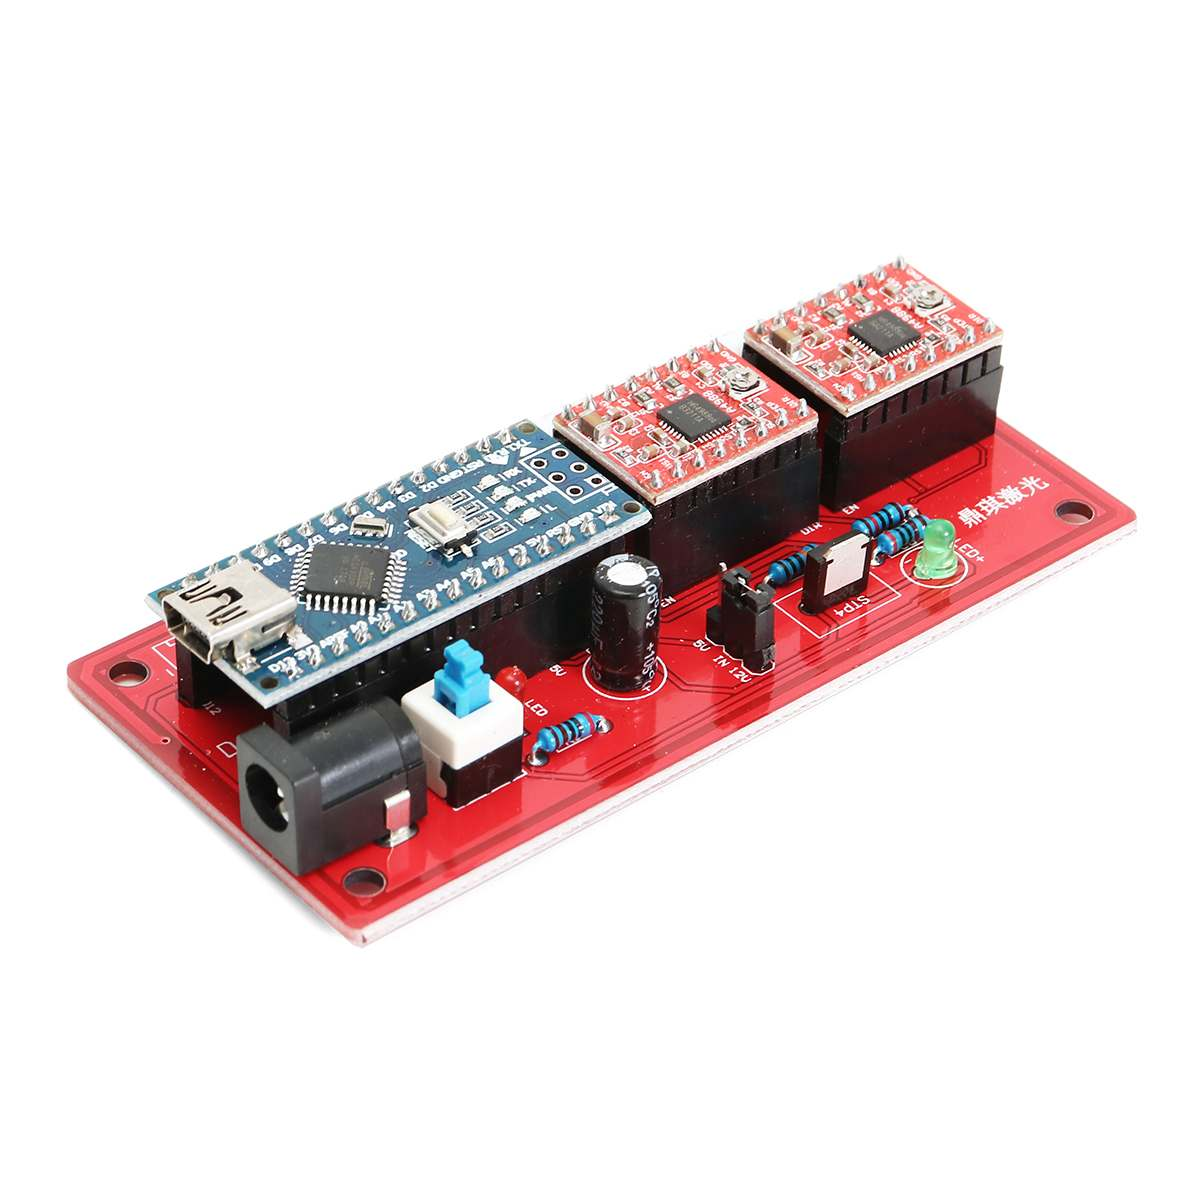 USB Control Board 2 Axis DIY CNC Laser Engraving Machine Controller Panel Support Laser Module Output Indicator